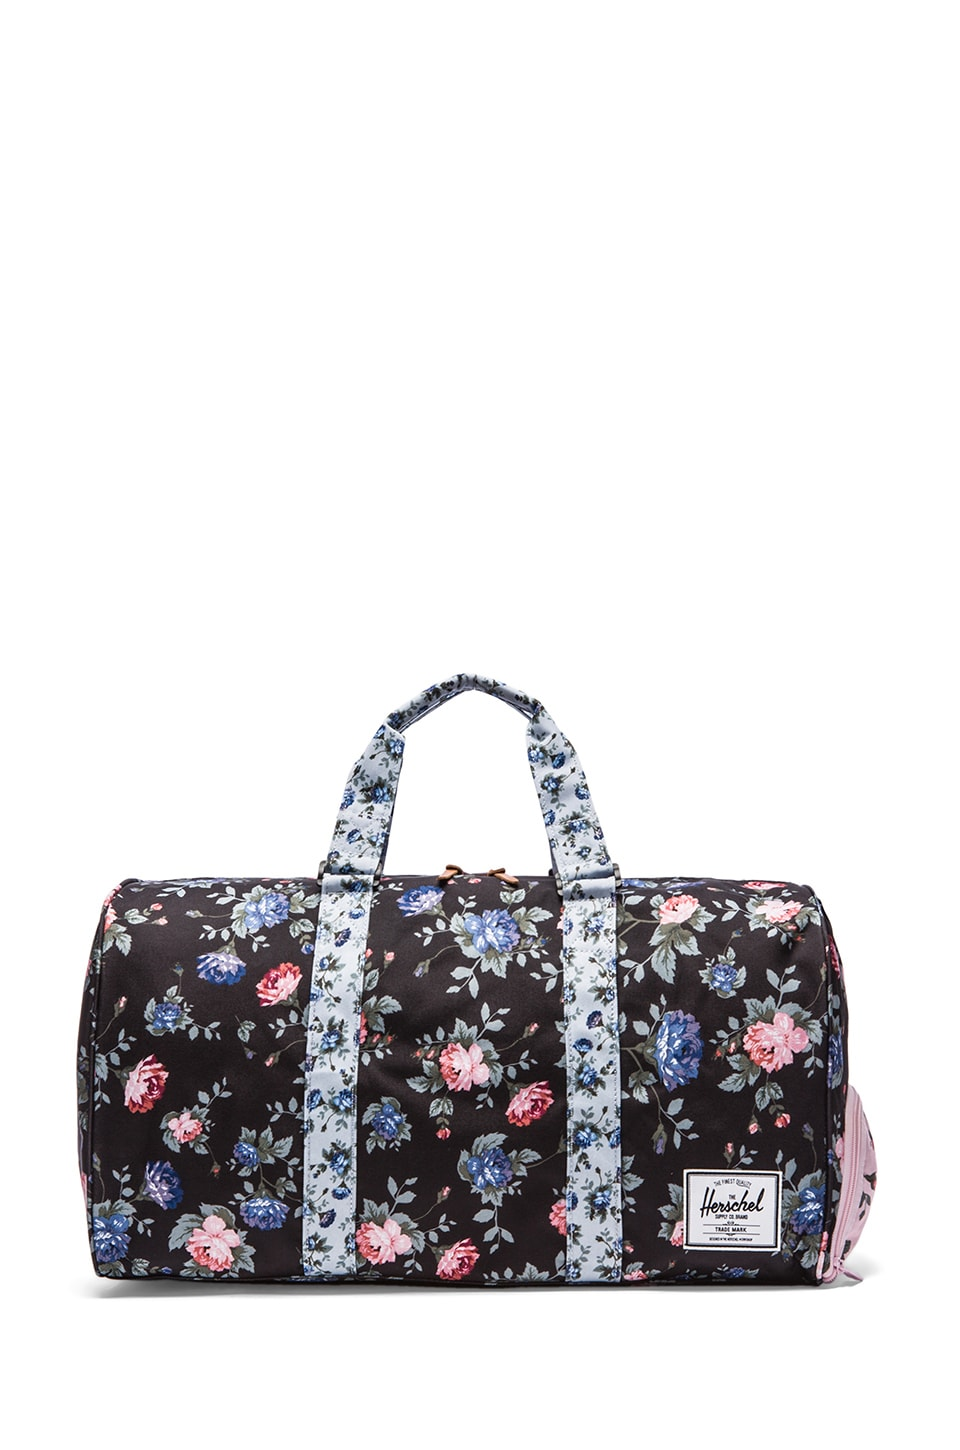 Herschel Supply Co. Fine China Collection Novel Duffle in Black Floral & Blue Floral